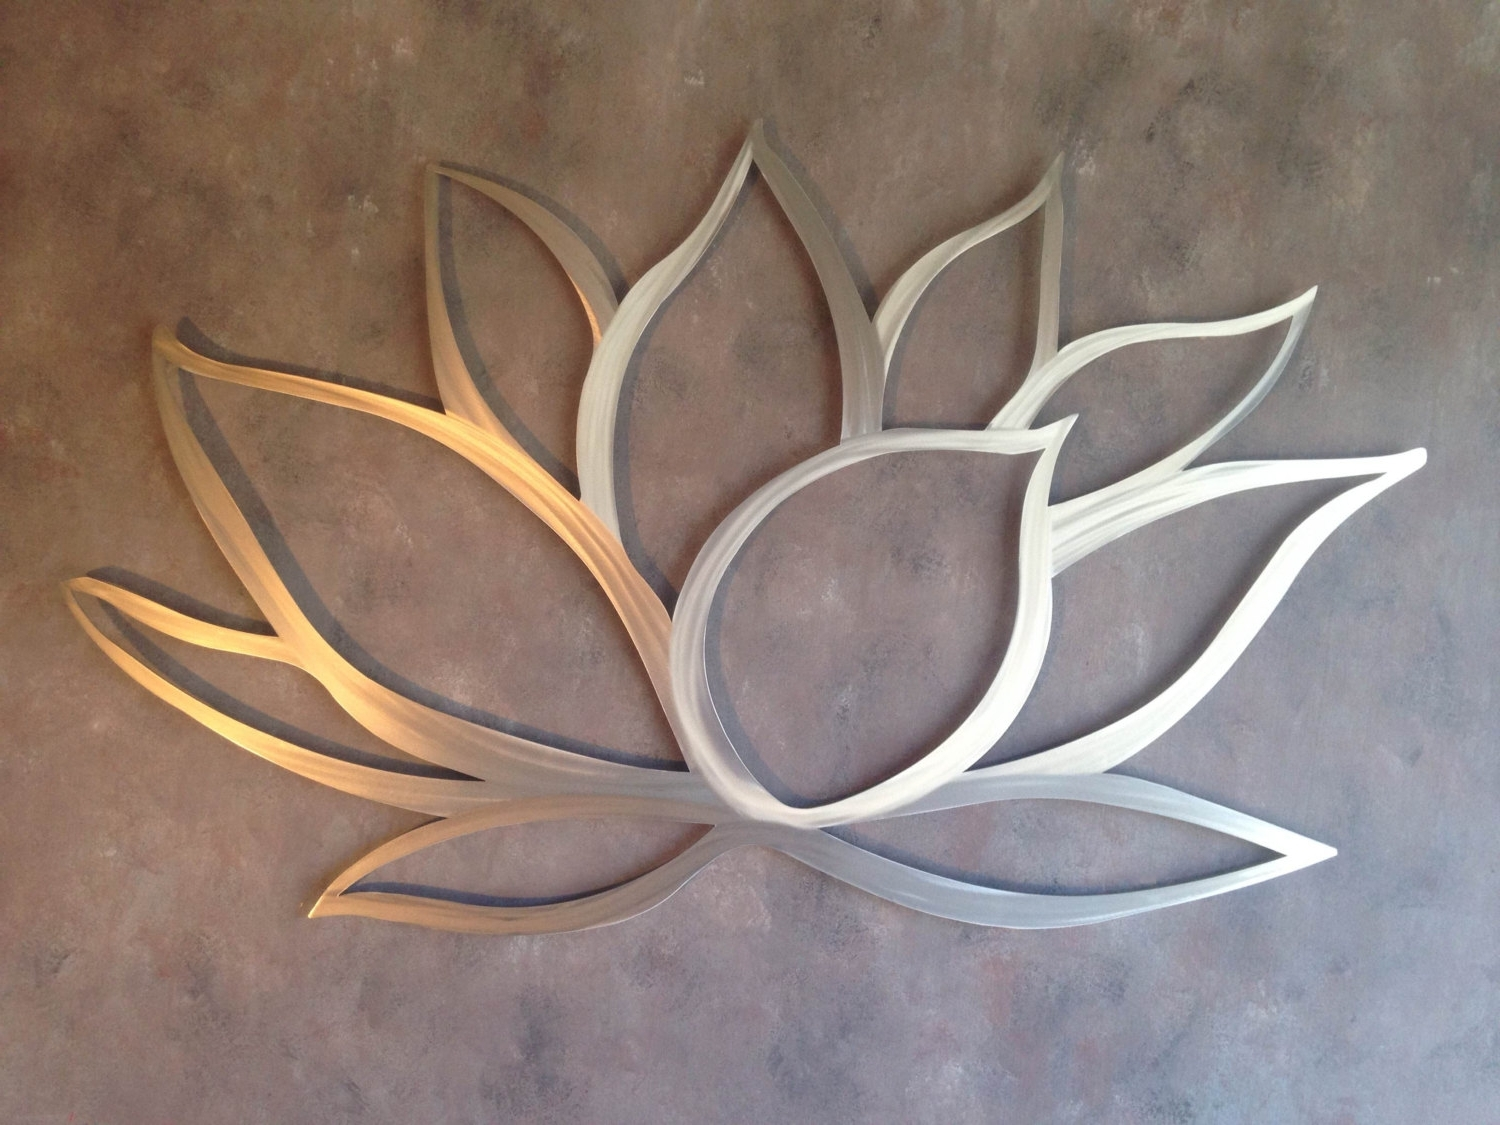 Cheap Metal Wall Art In Latest Wall Art: Best Design About Home Decor Metal Wall Art Decorative (View 12 of 15)